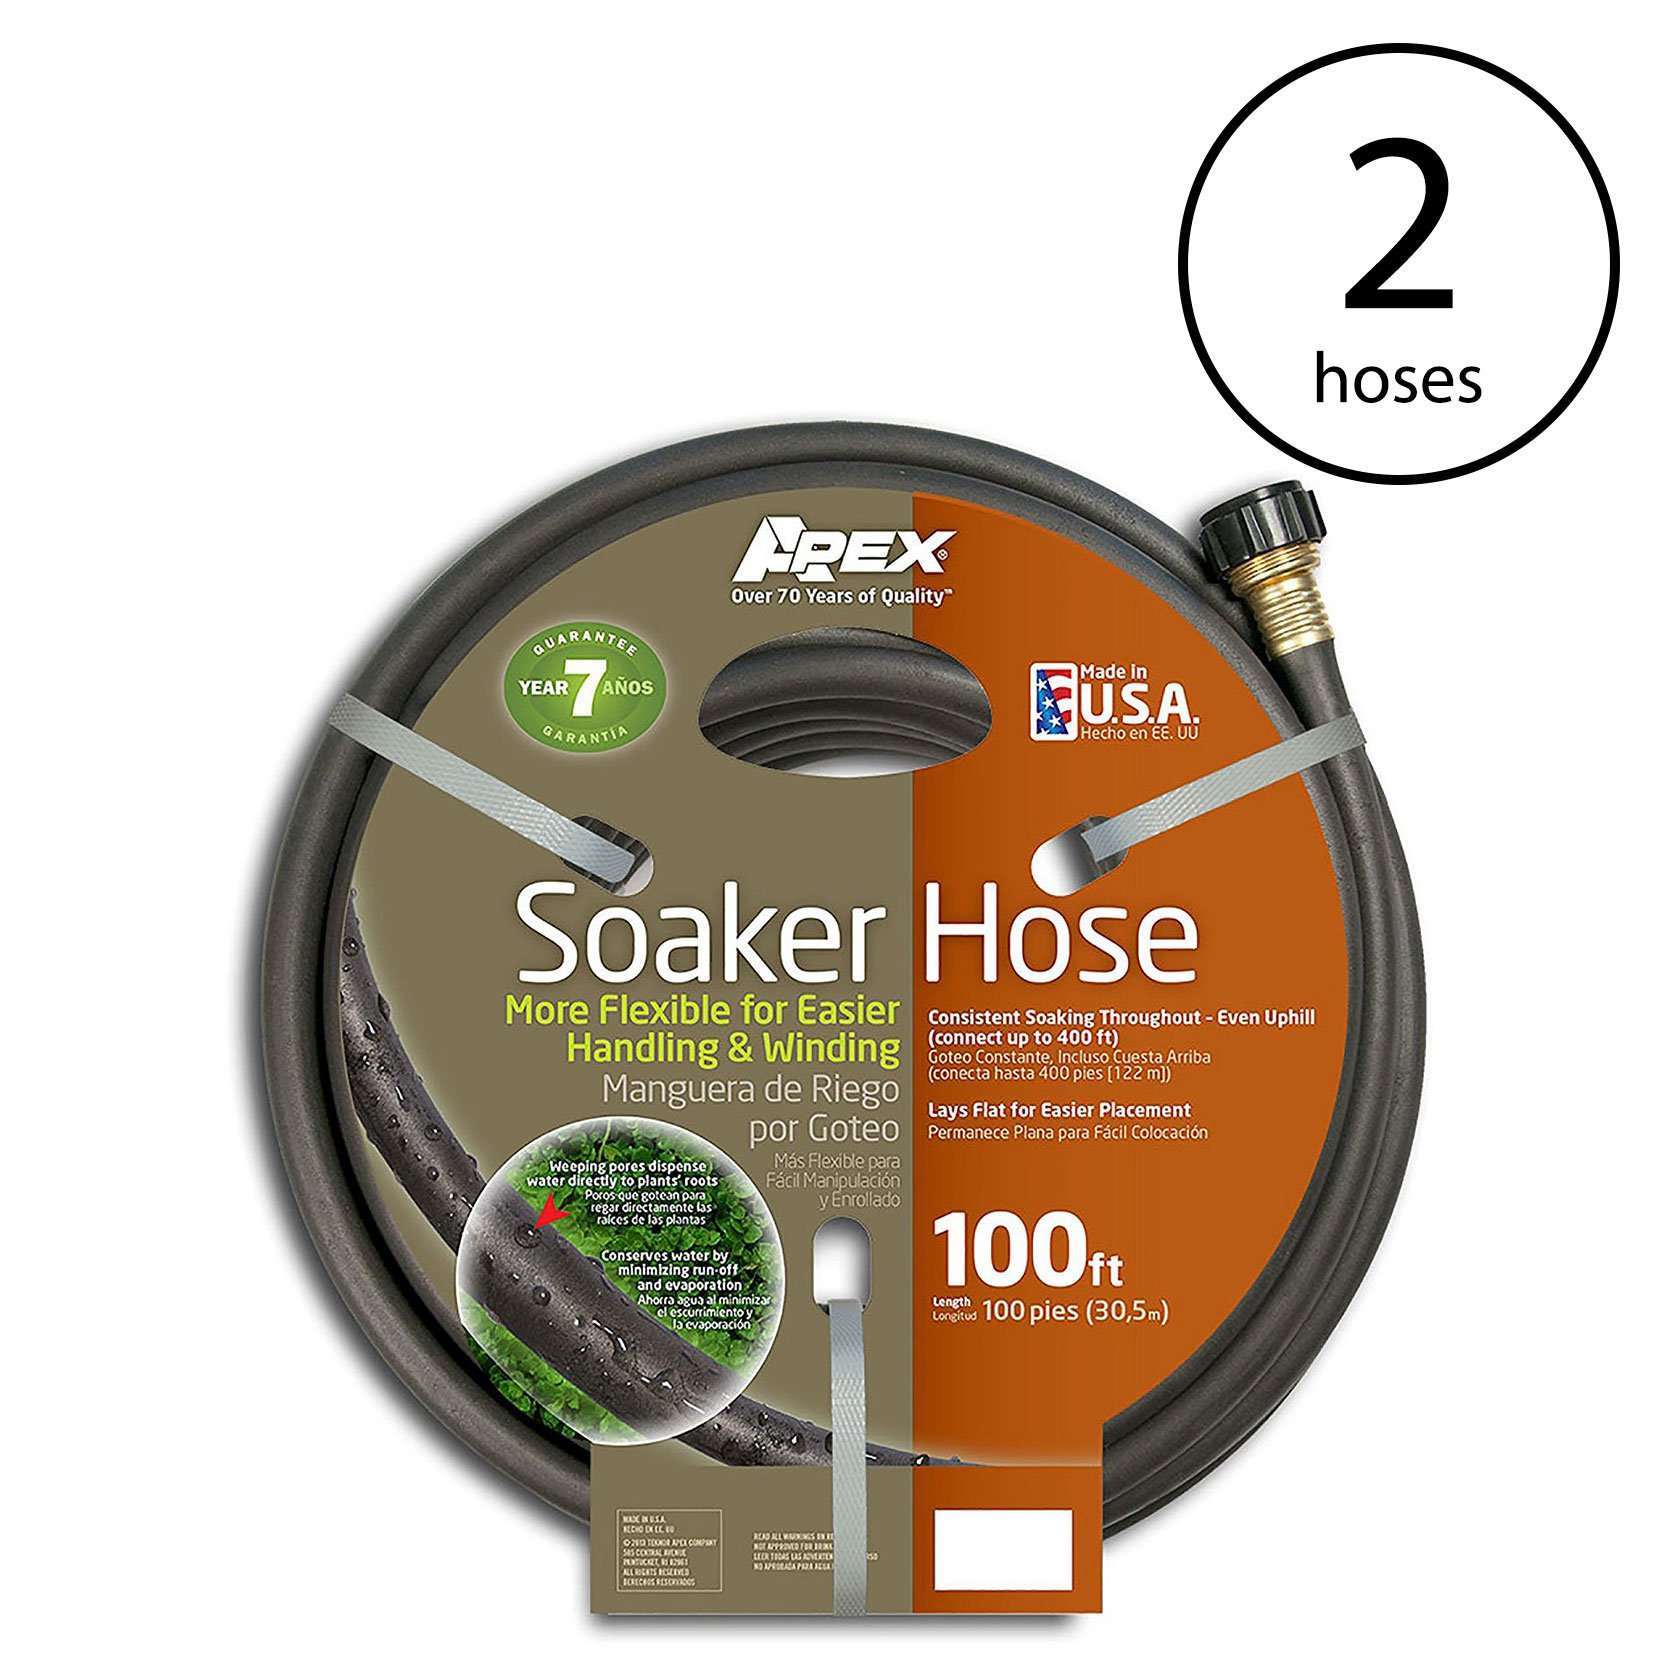 Apex 100' Long Flexible Water Conservation Garden Soil Soaker Hose (2 Pack)